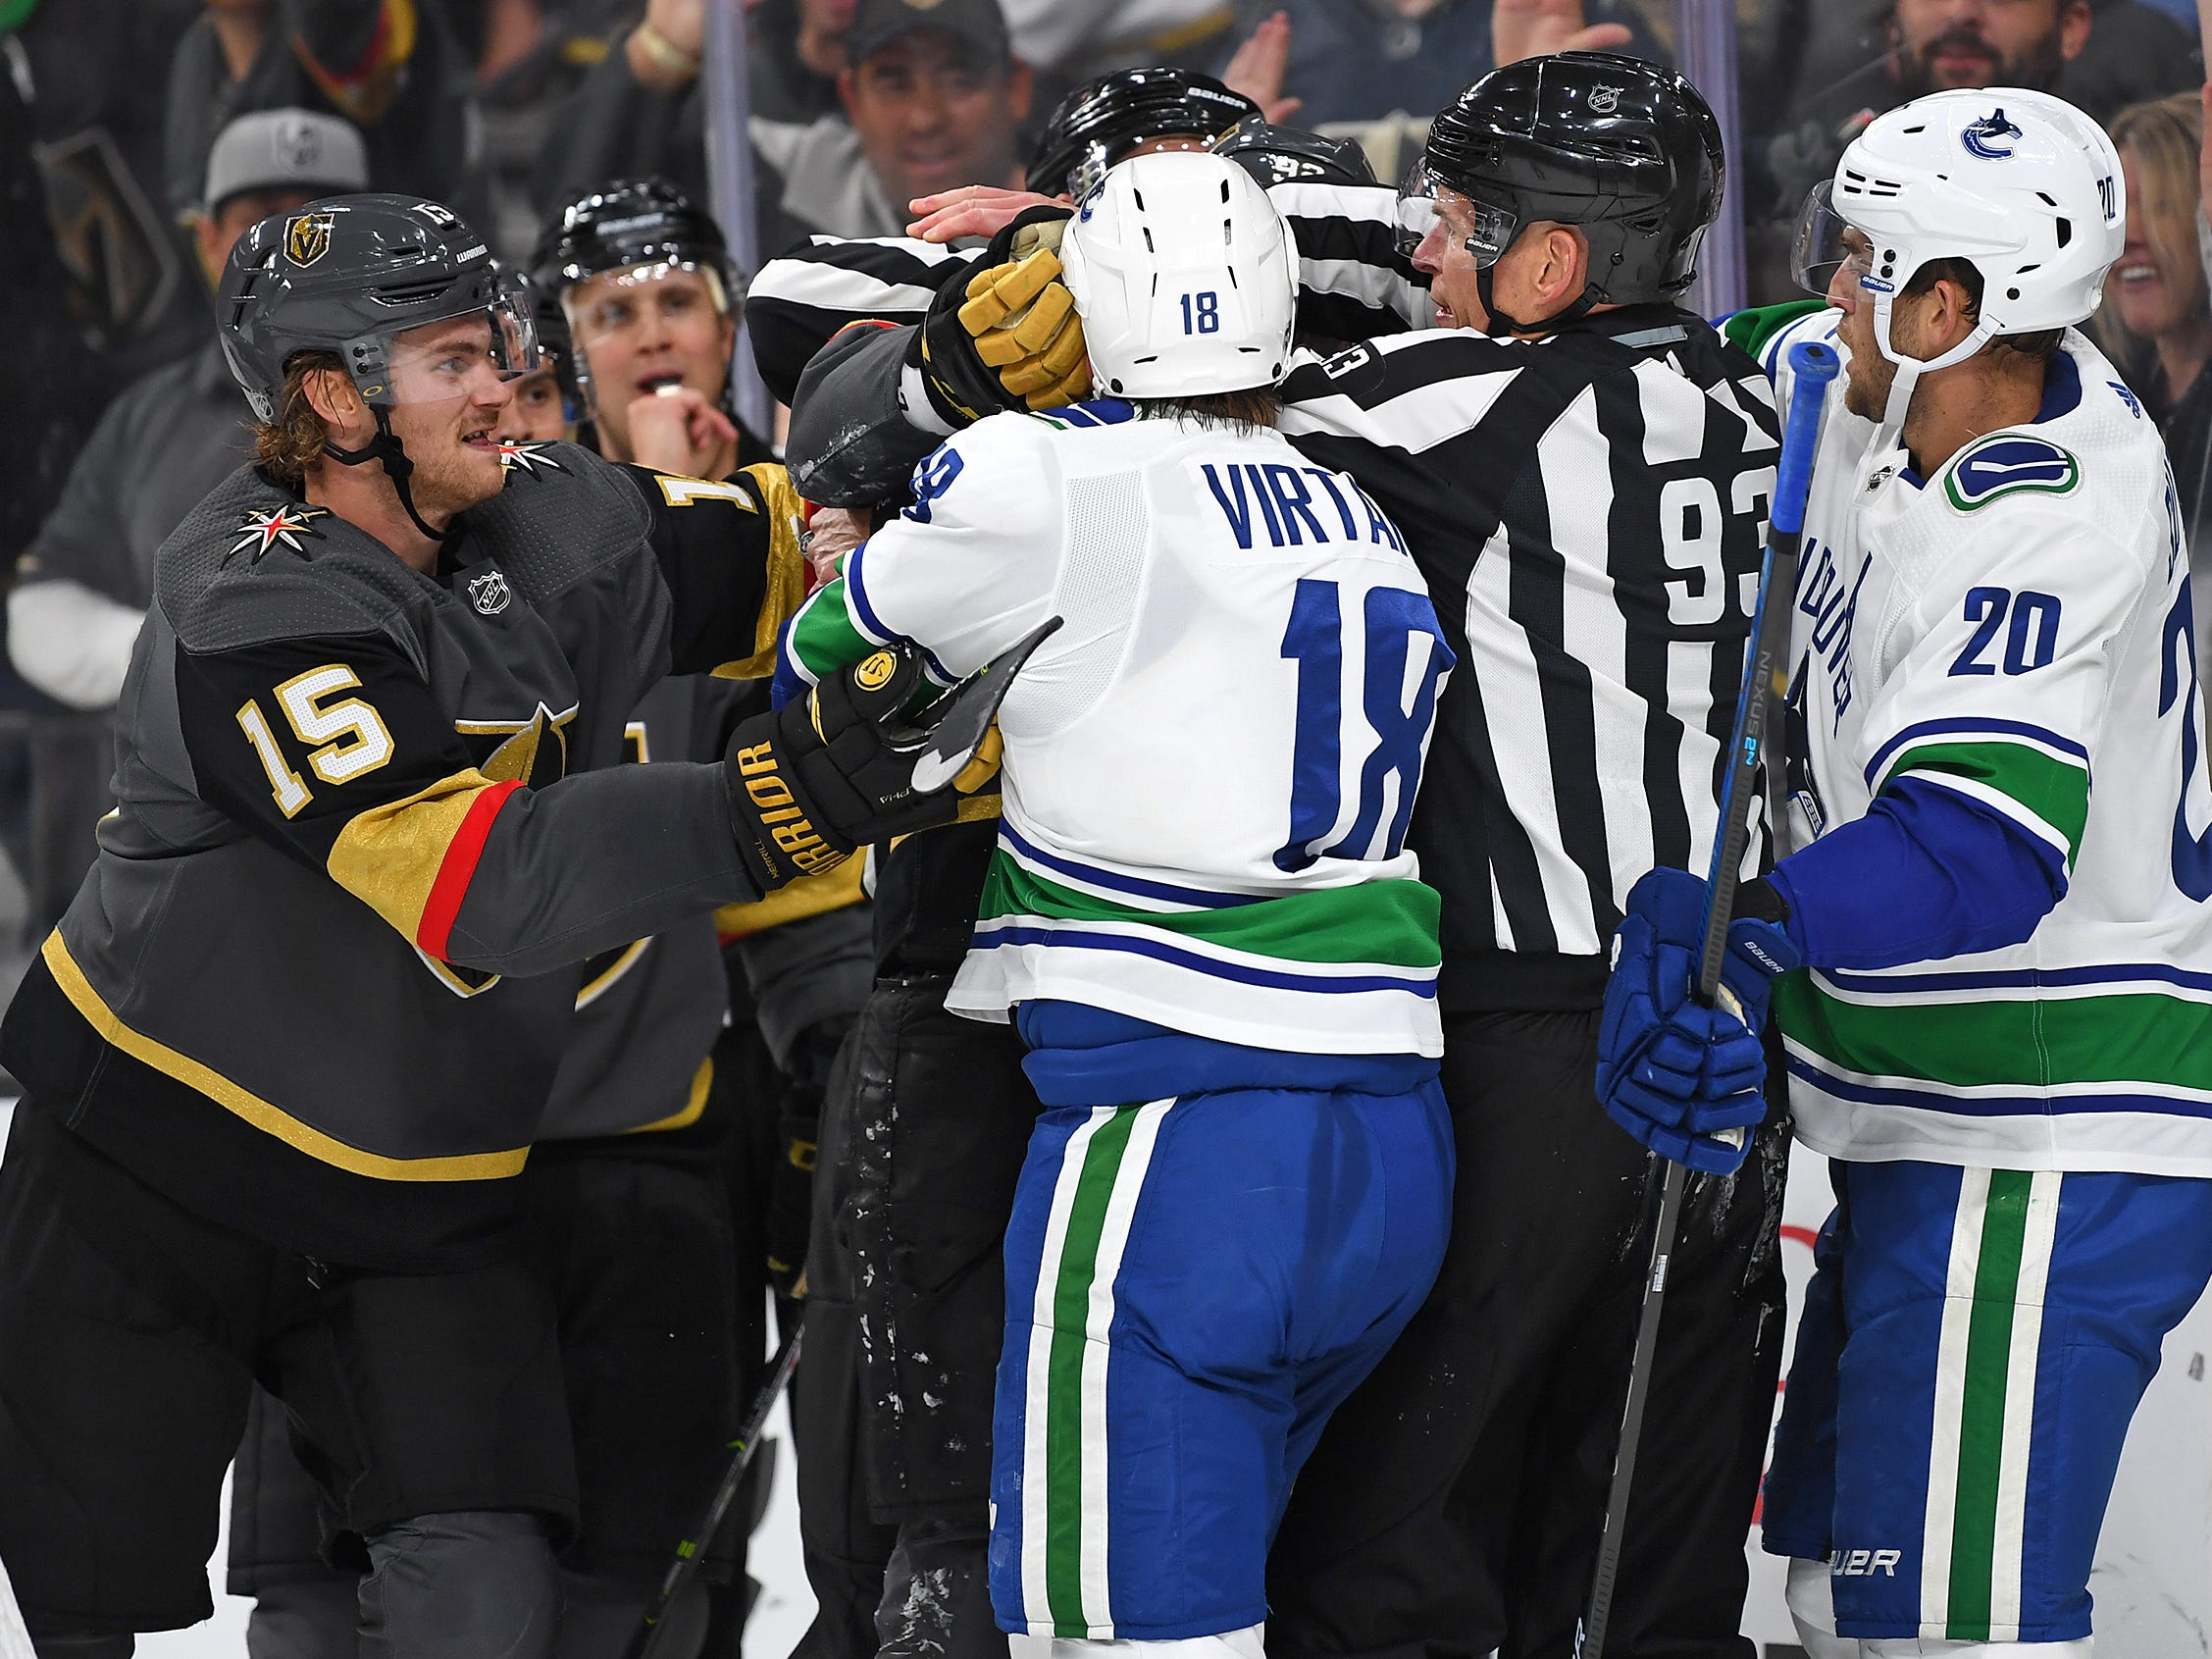 Oct. 24: Golden Knights vs. Canucks.